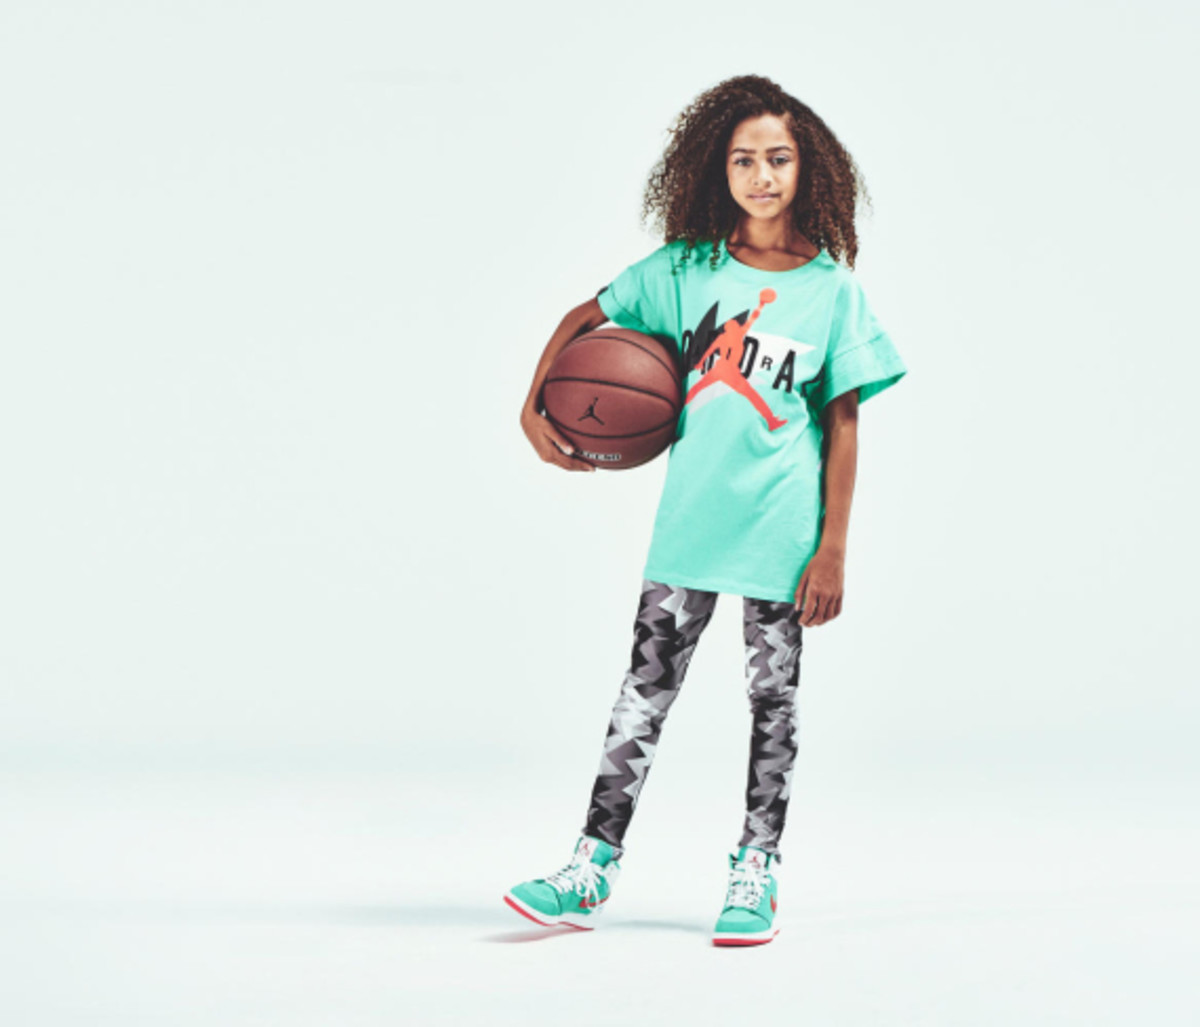 jordan-brand-announces-extended-grade-school-sizing-for-girls-07